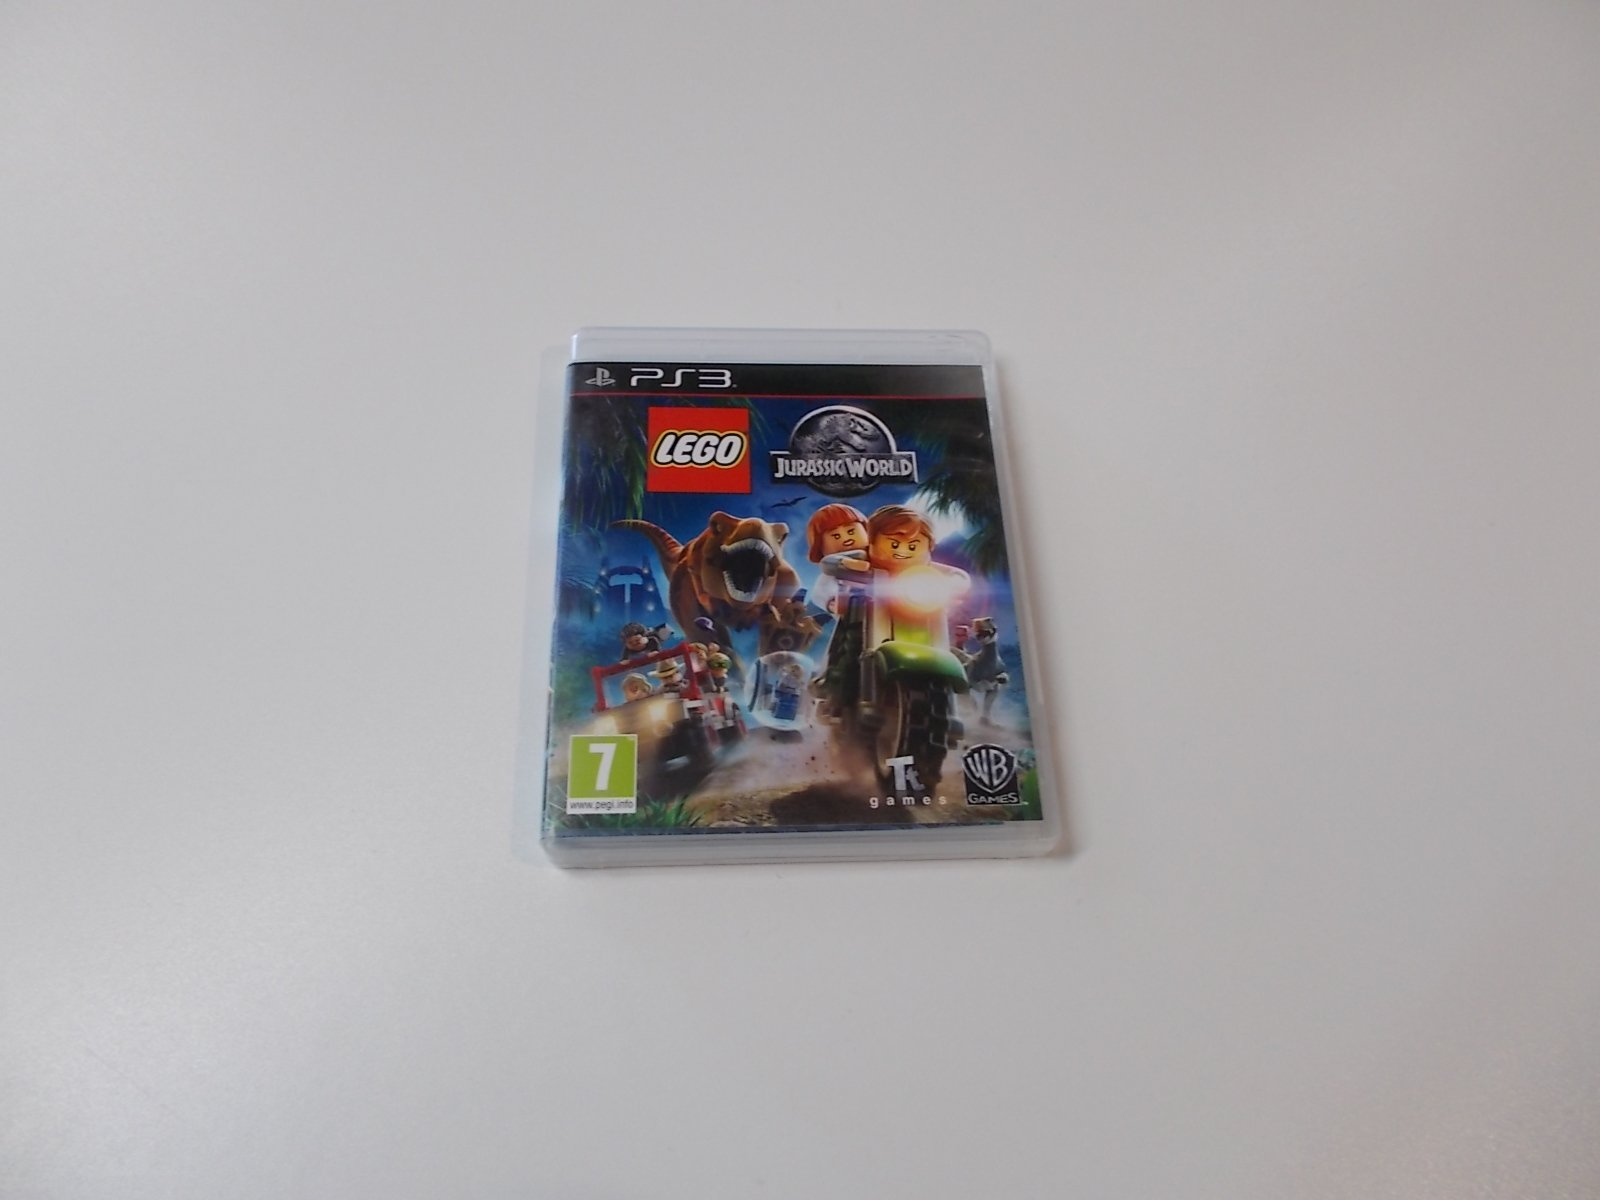 Lego Jurassic World - GRA Ps3 - Opole 0444